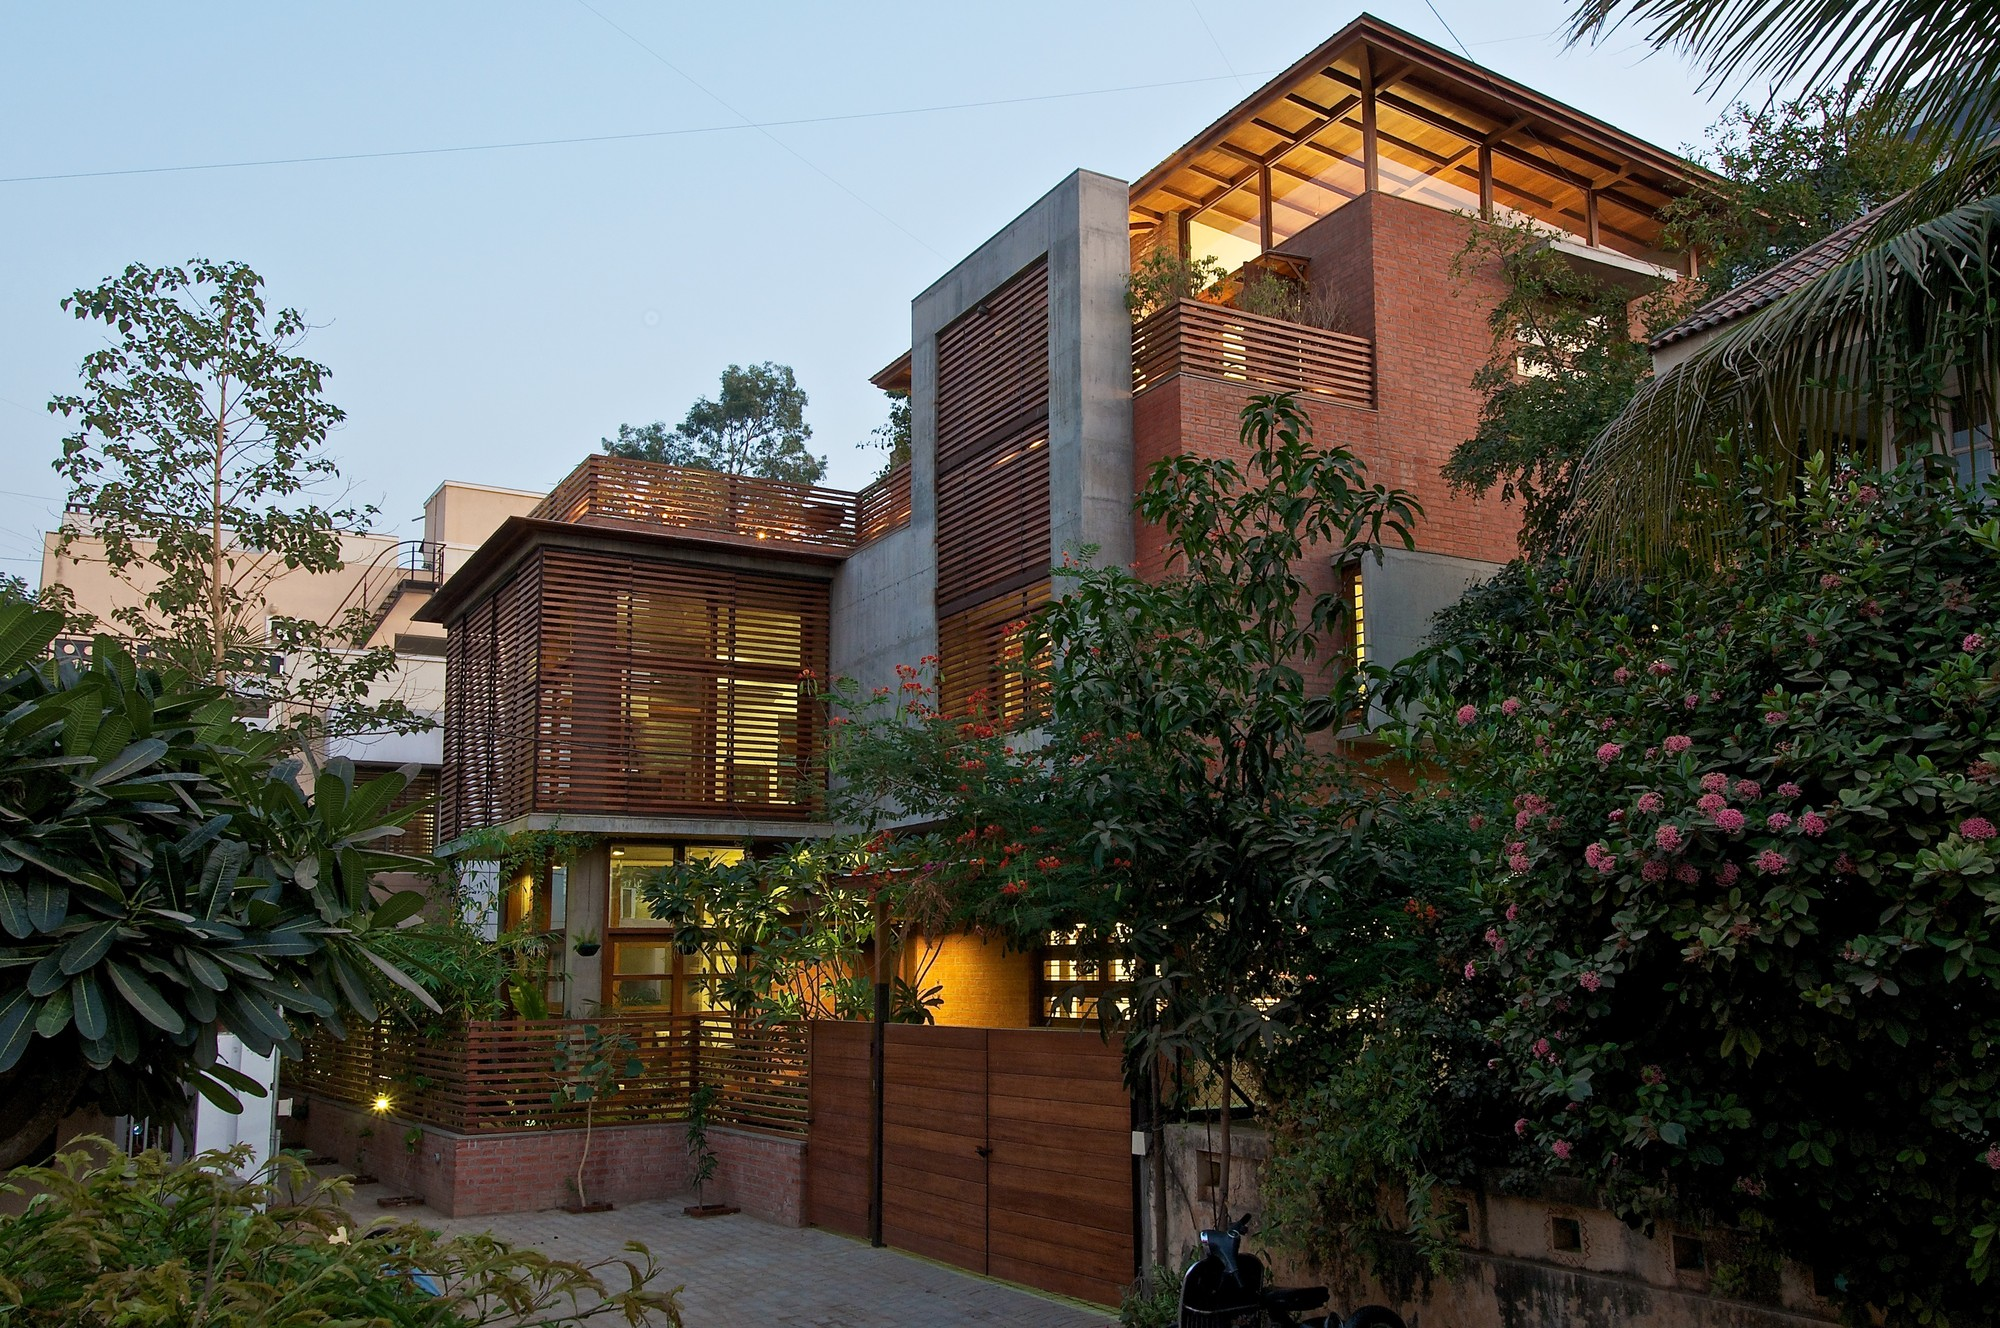 The Green House / Hiren Patel Architects, © Sebastian Zachariah